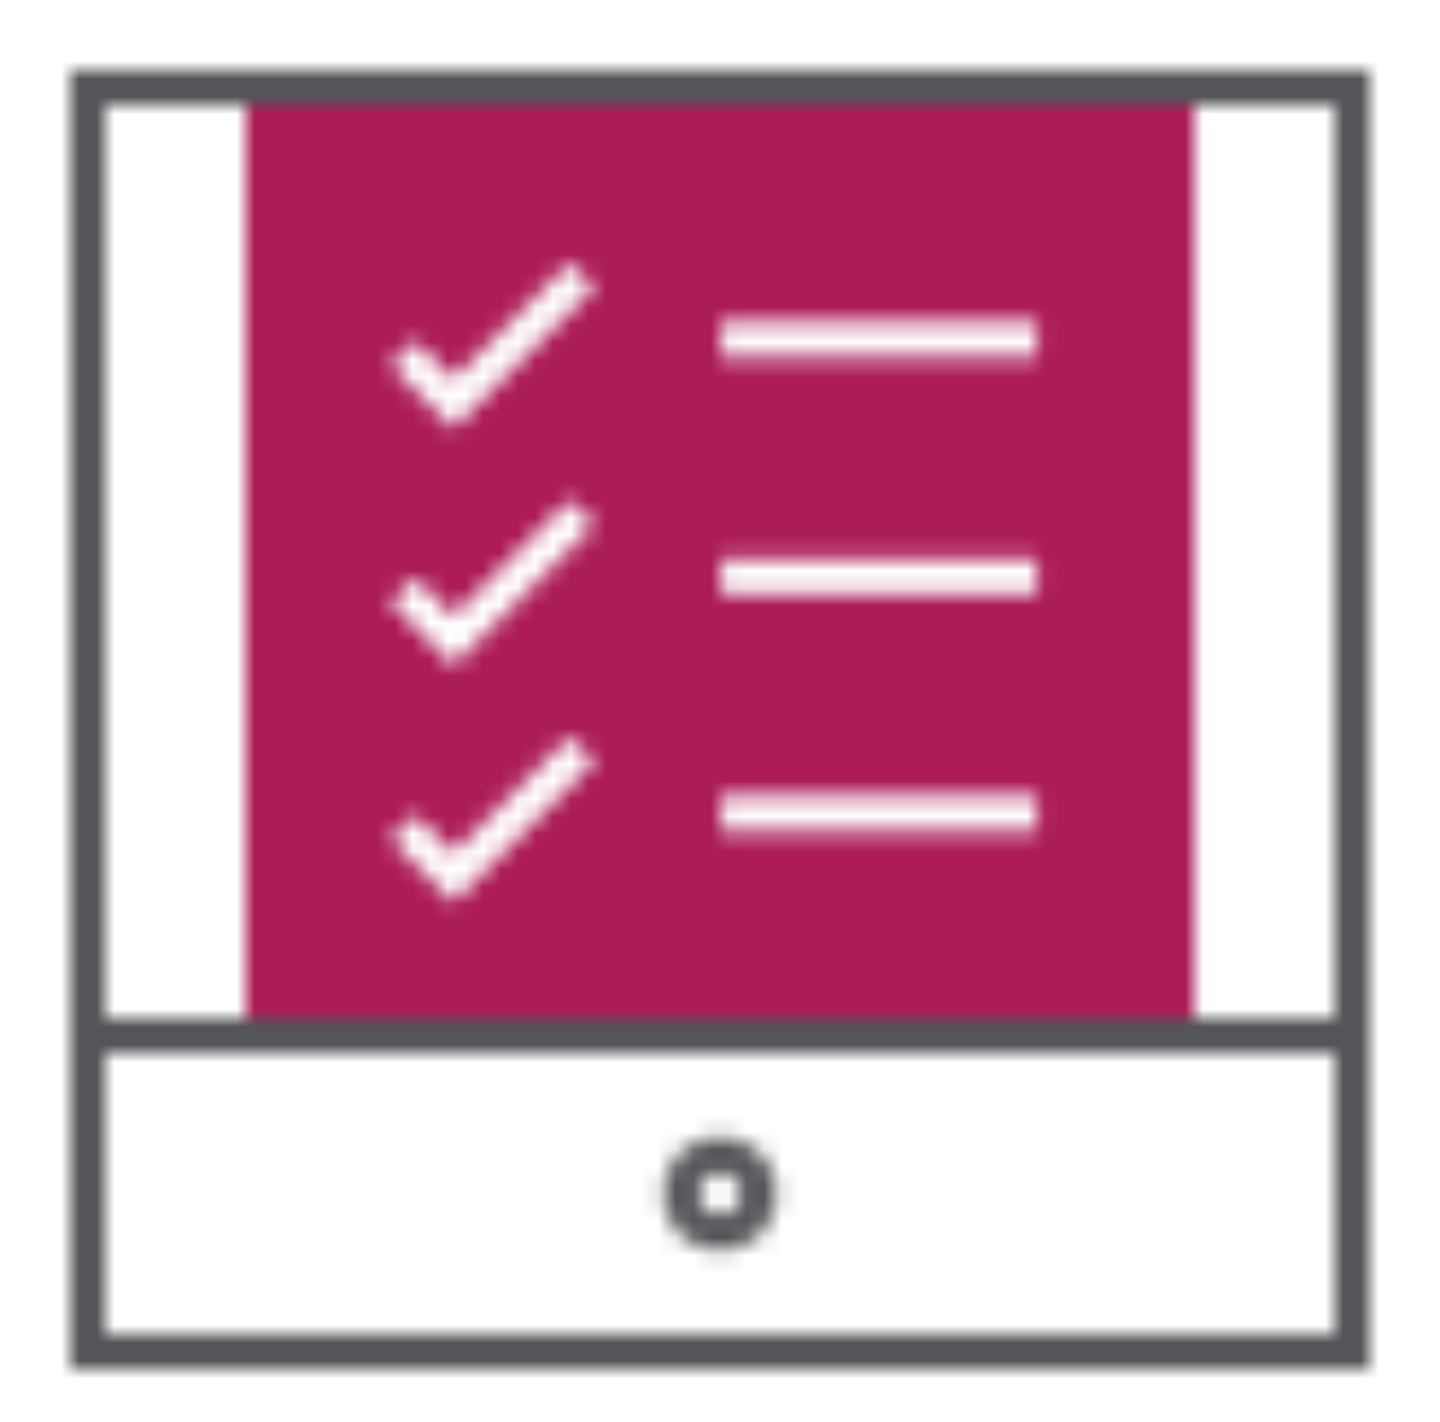 Crewpro packing Inventory app check icon